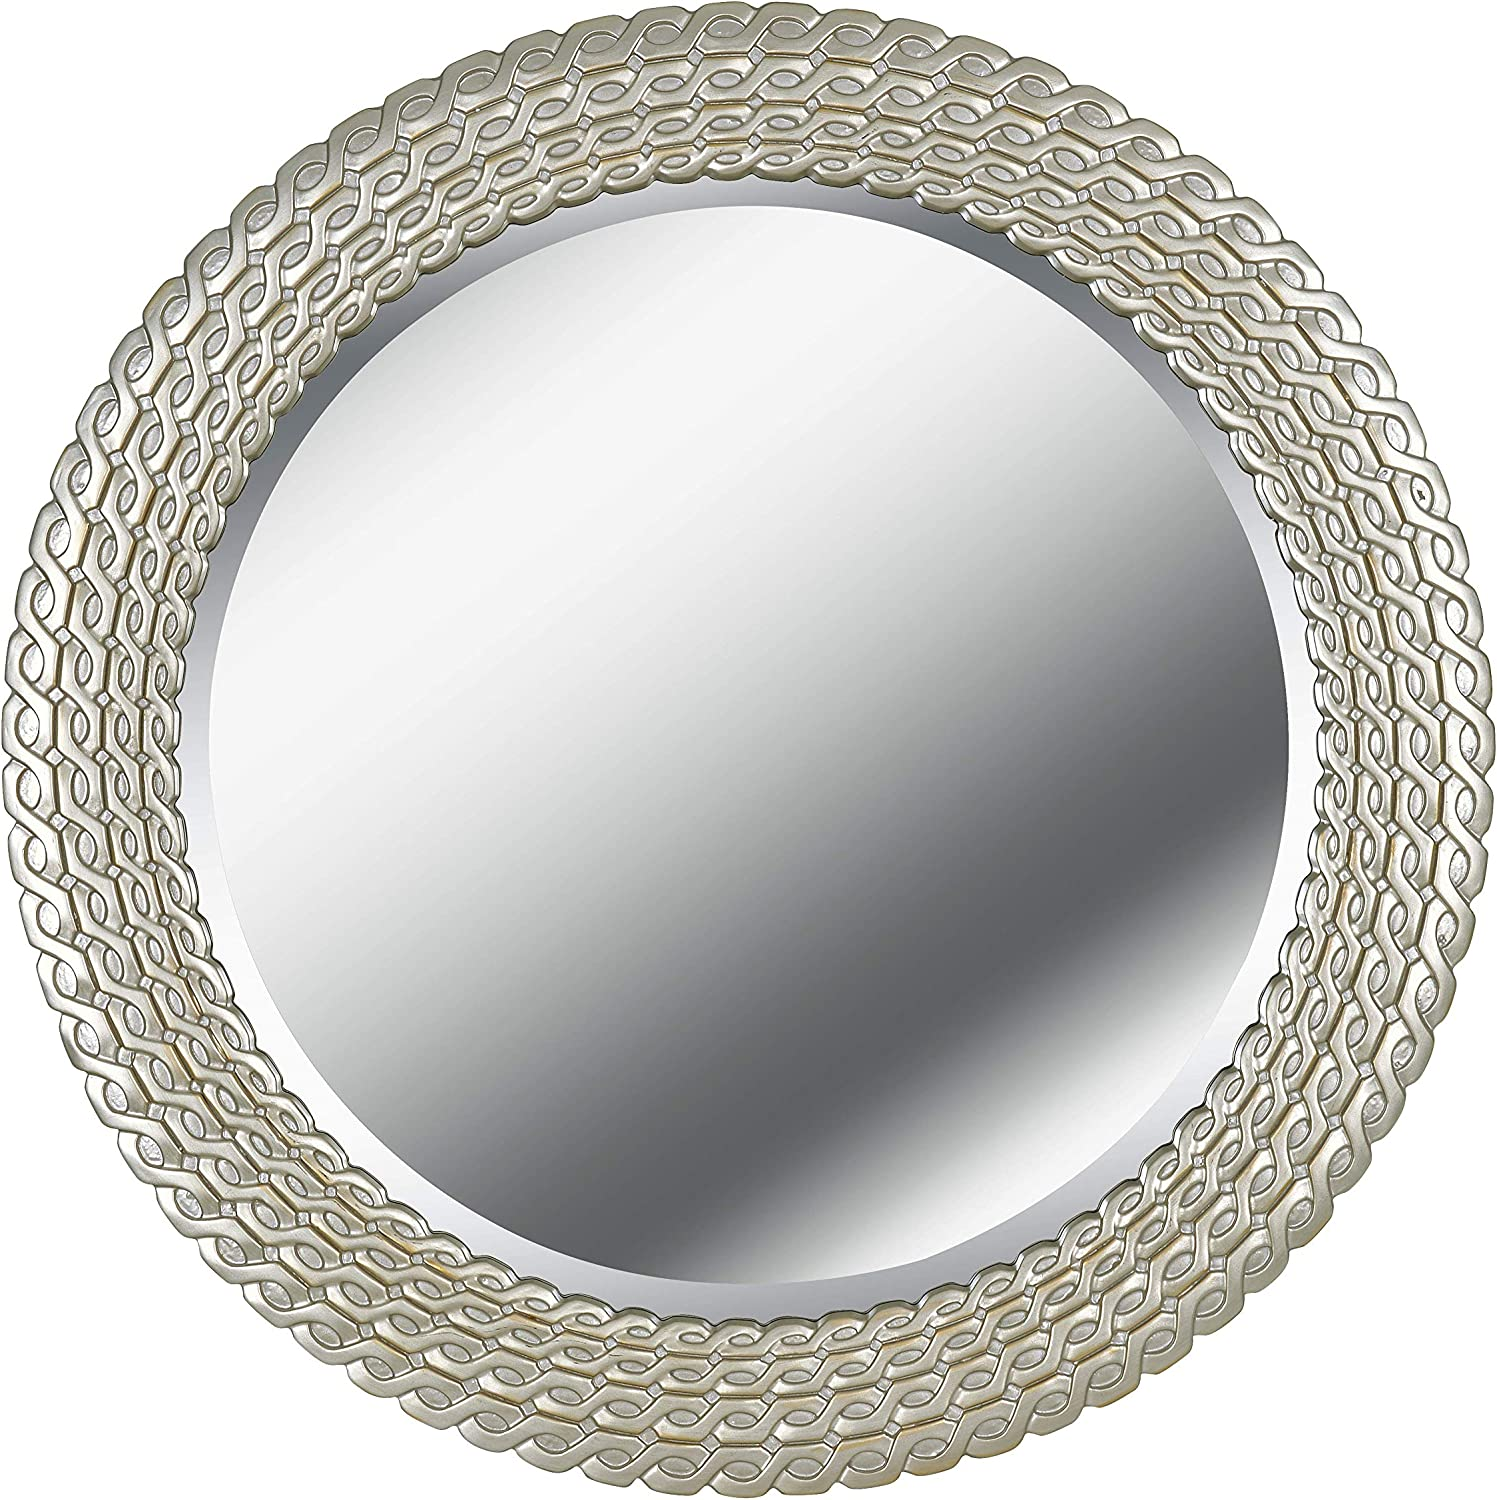 Kenroy Home 61016 Bracelet Wall Mirror 35 Inch Diameter Brushed Silver And Gold Home Kitchen